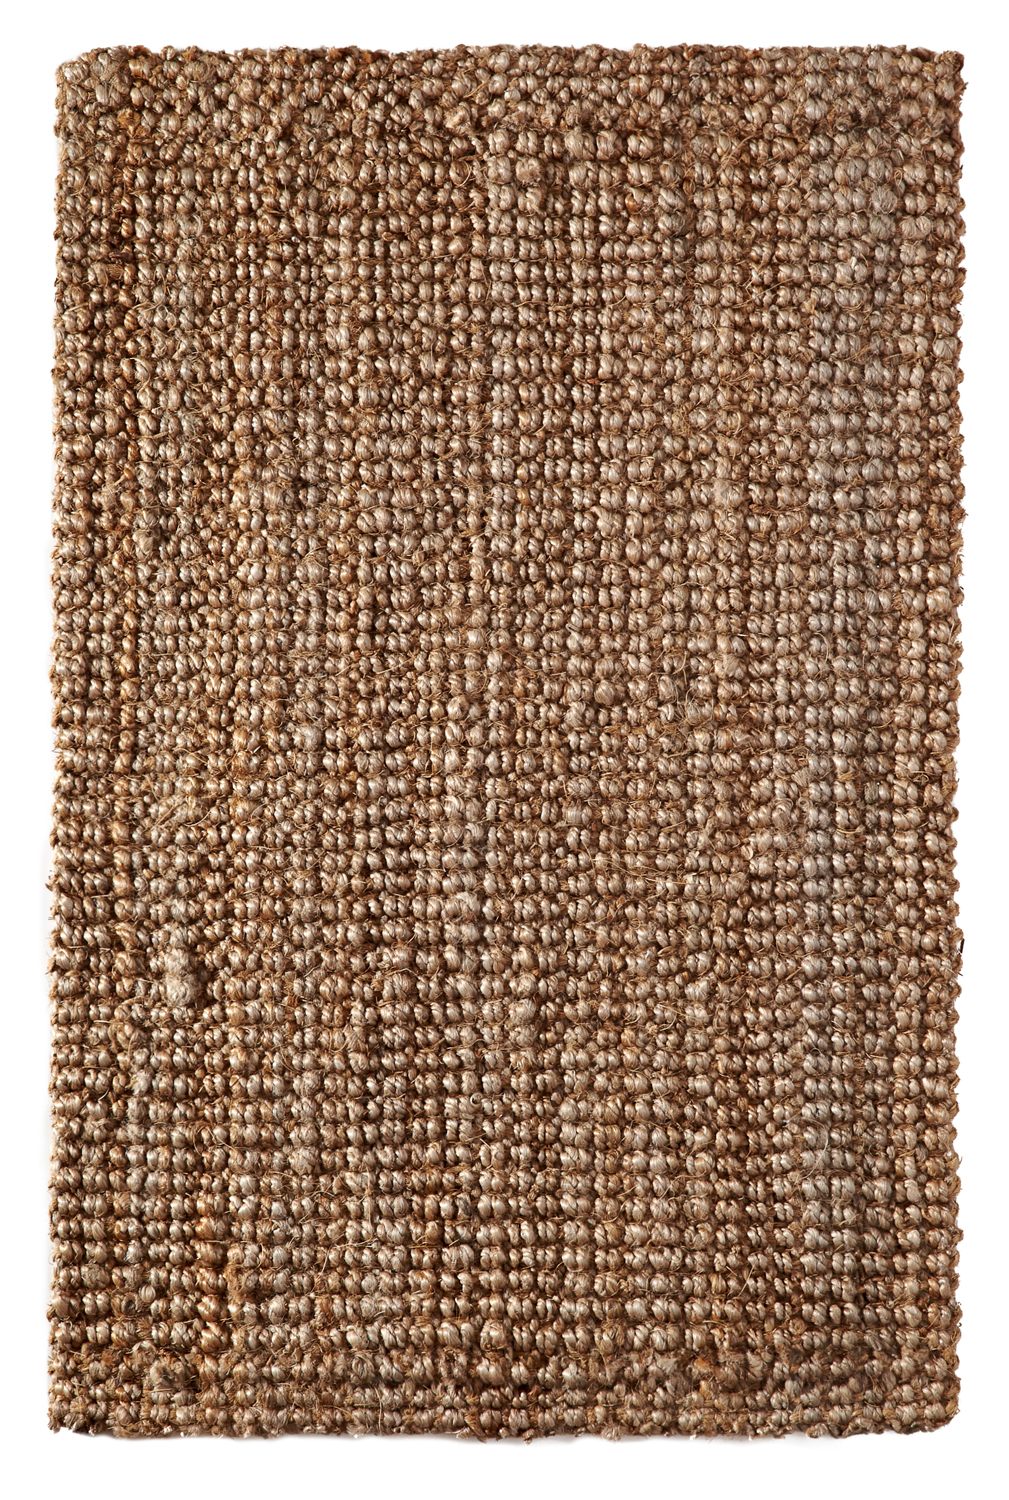 worksheet 8 Ft In Inches textileshop handspun jute area rug 8 feet 6 inches x 12 7 9 by